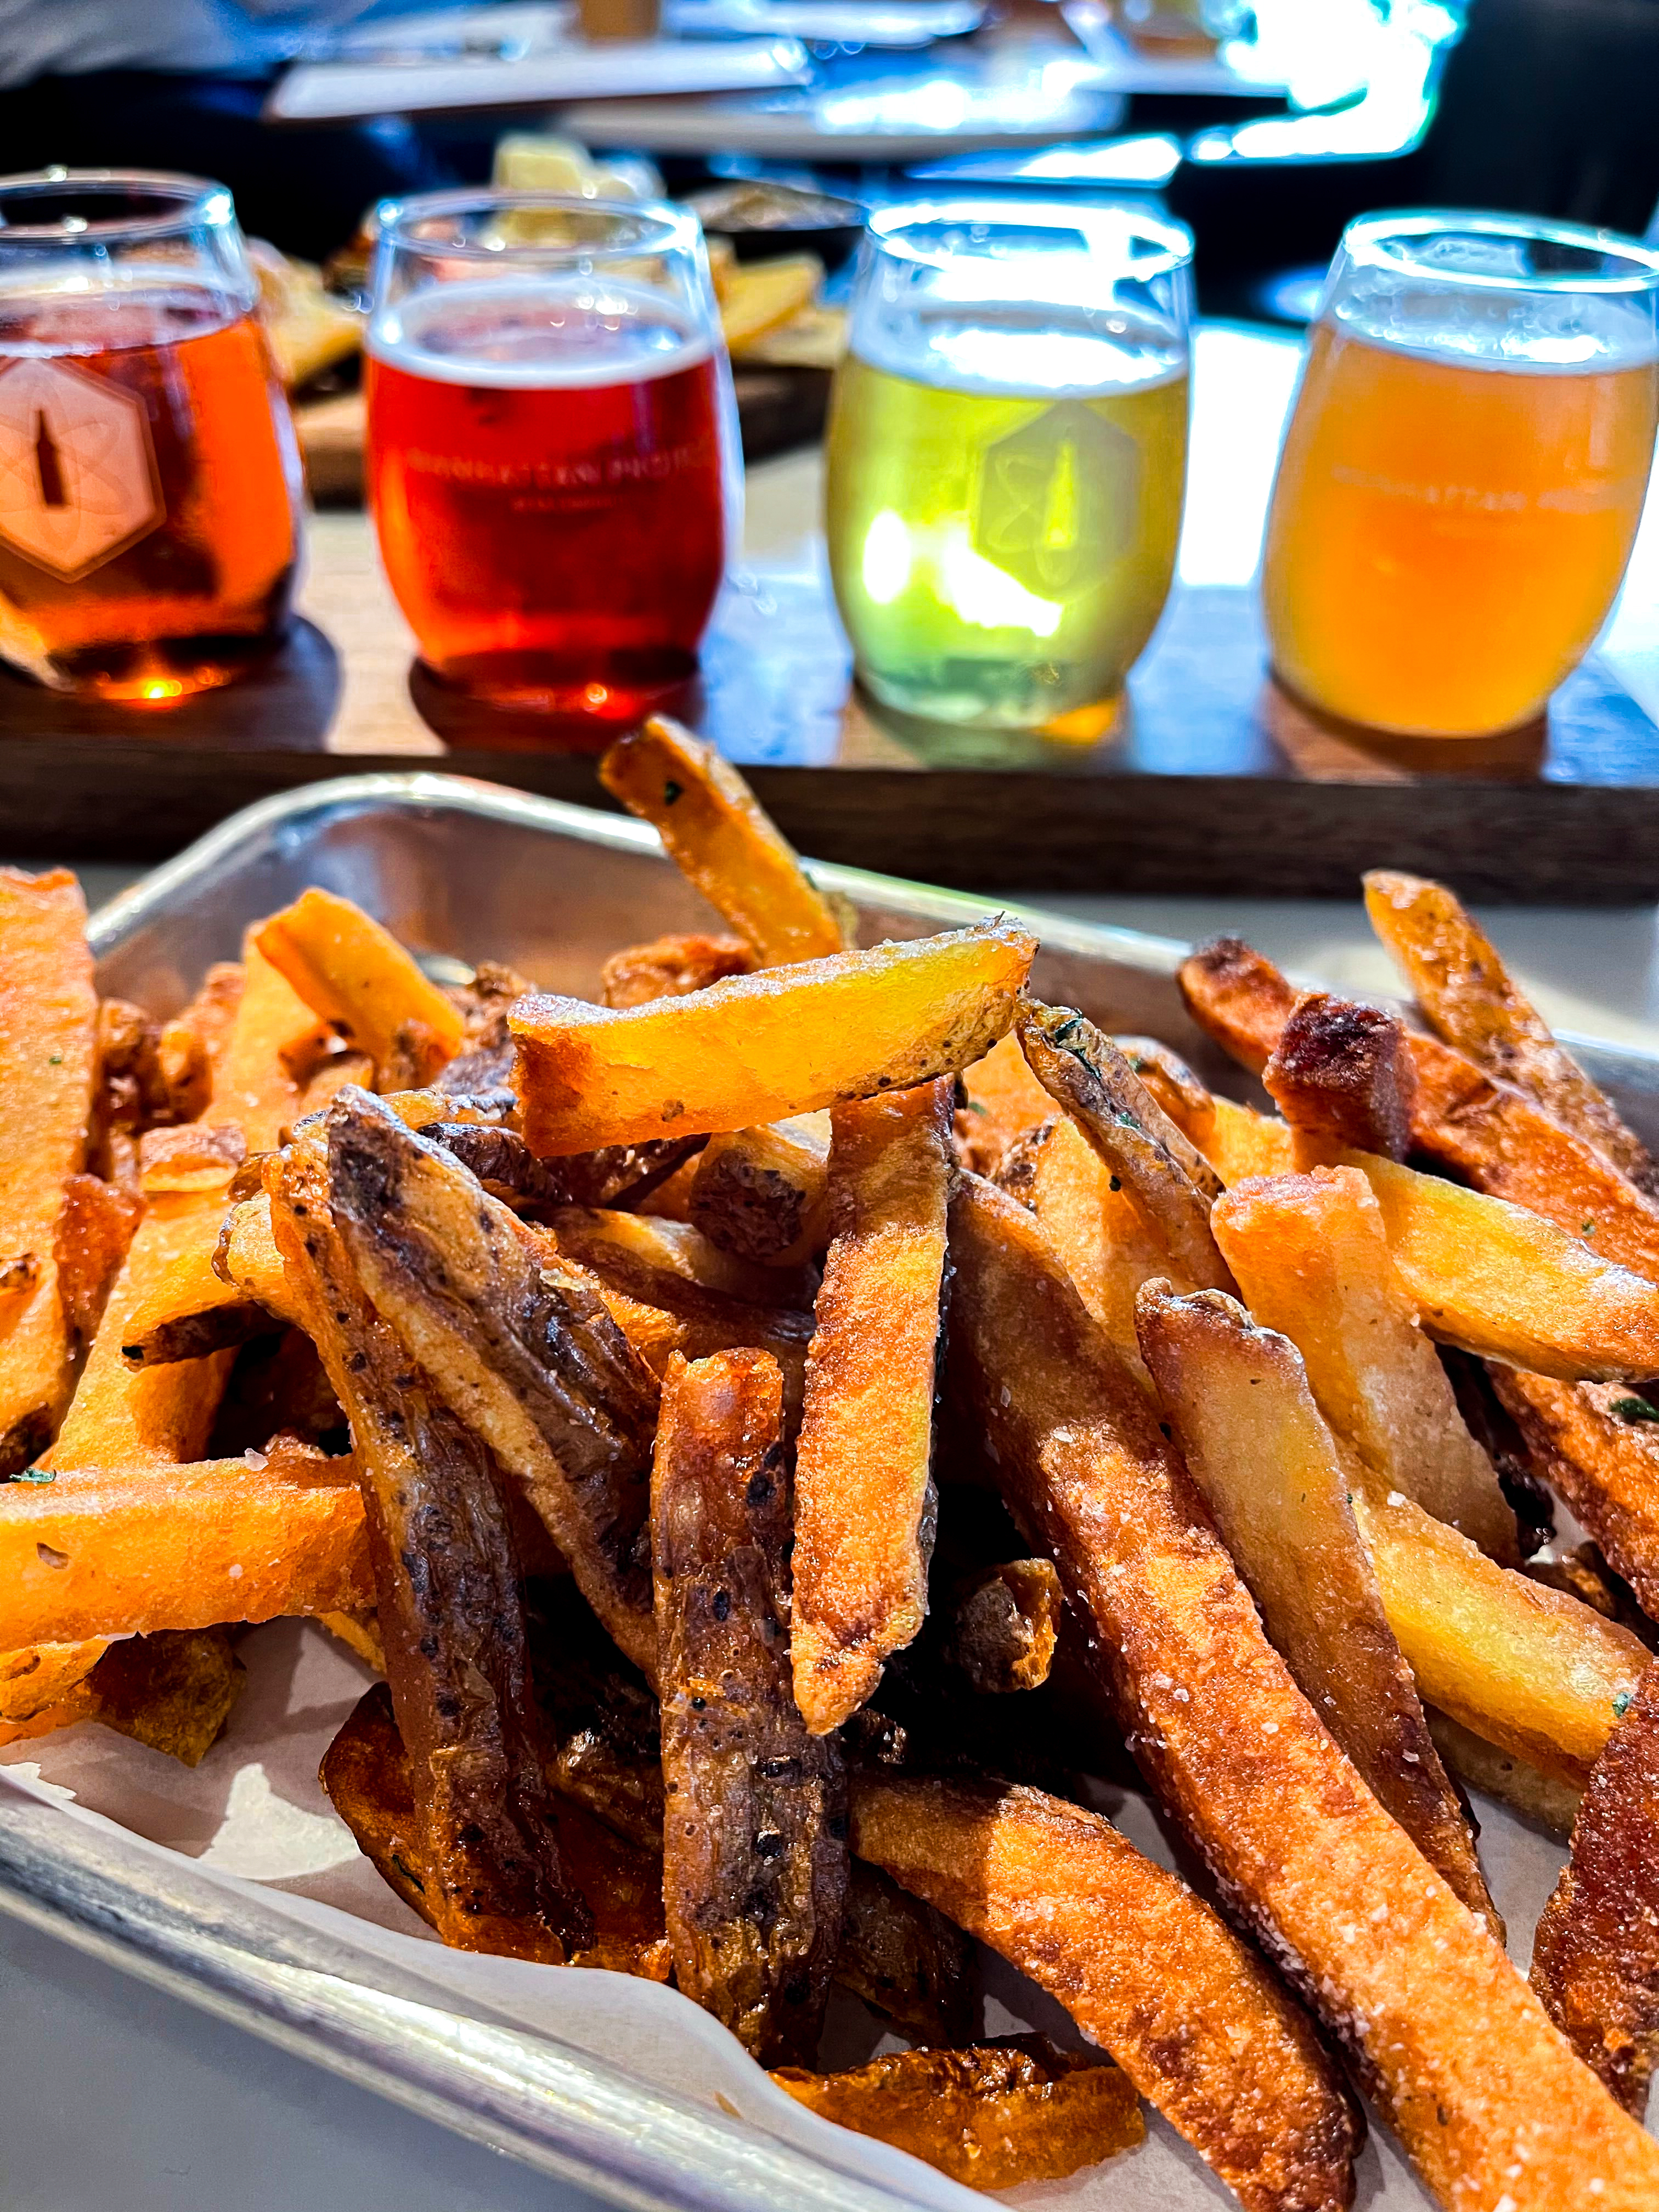 Beer and fries at Manhatten Beer Project in West Dallas.